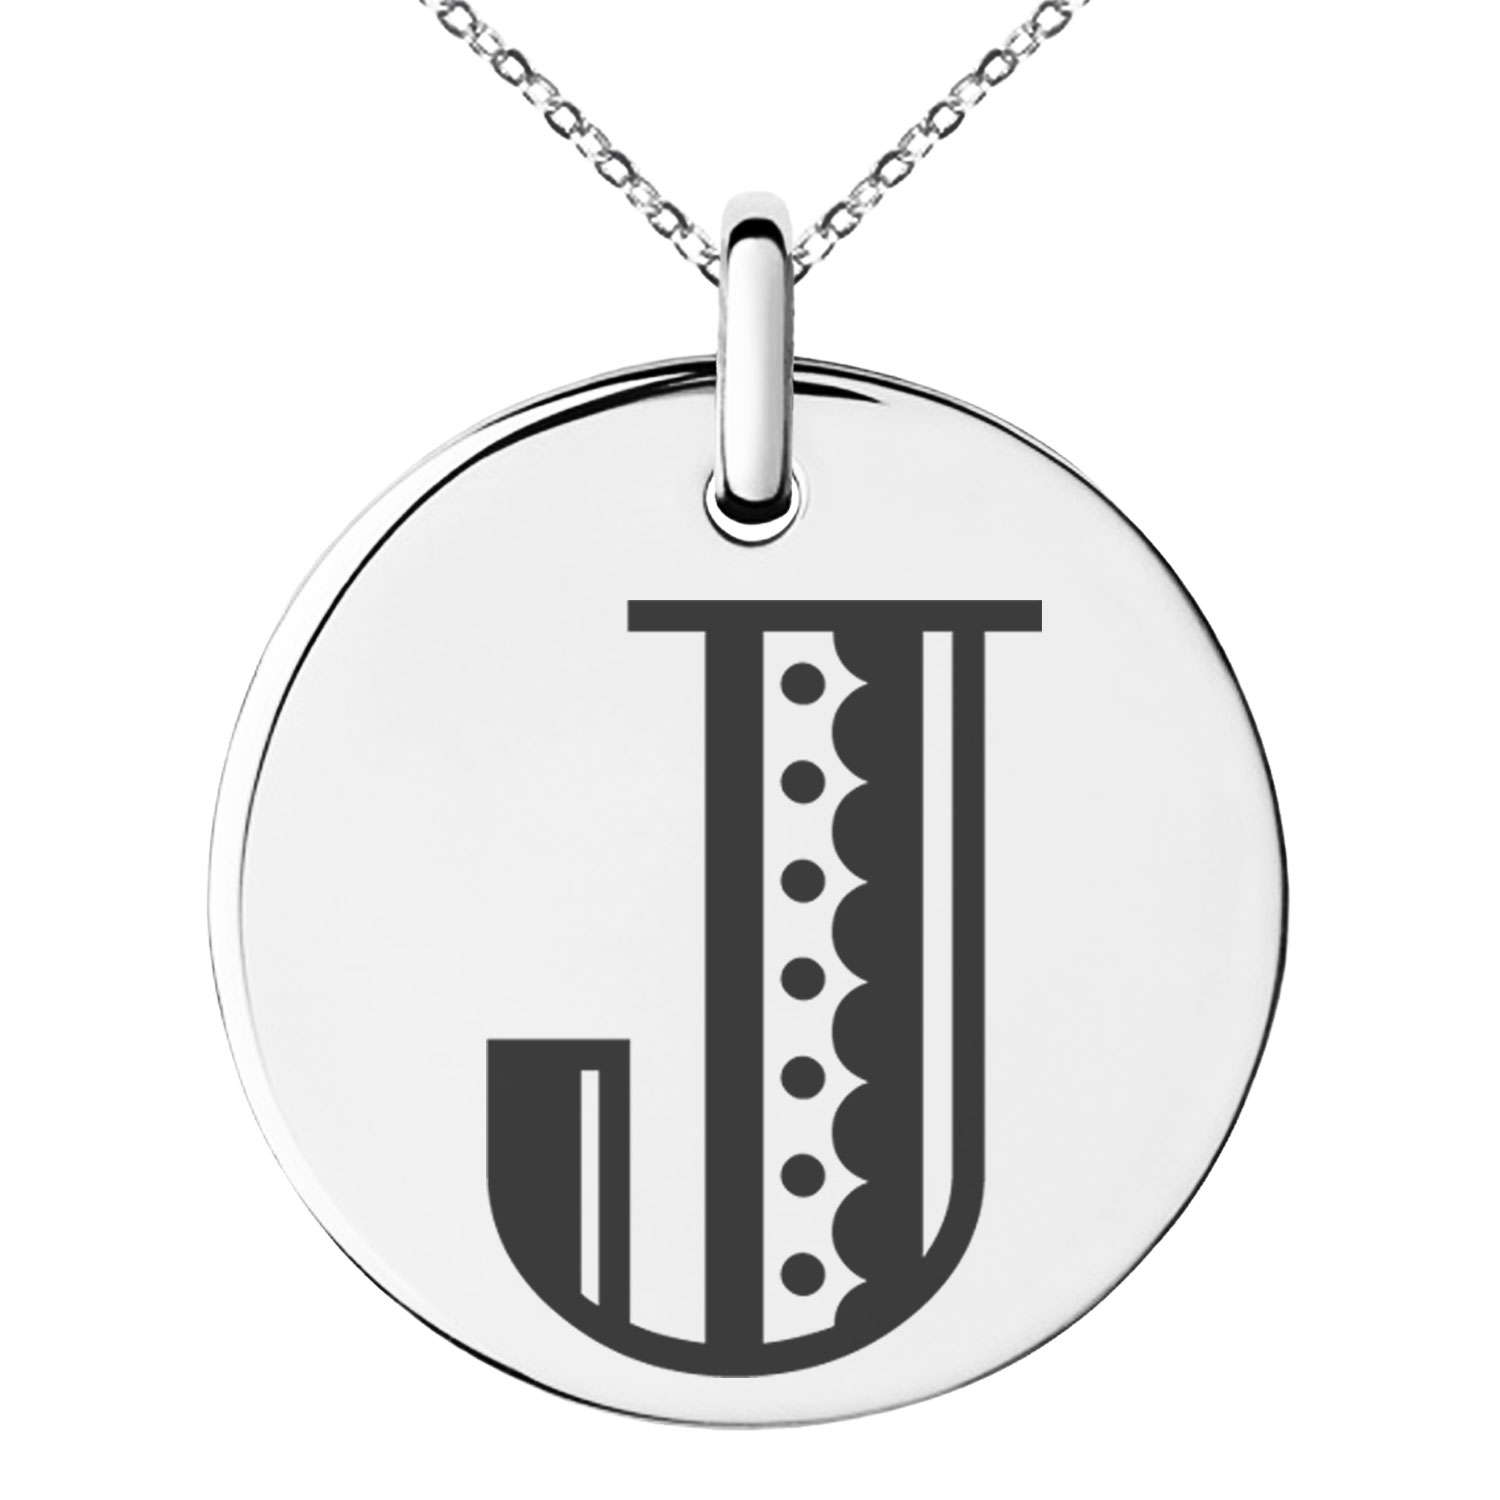 Tioneer Stainless Steel Letter S Initial Metro Retro Monogram Floating Heart Tag Charm Pendant Necklace